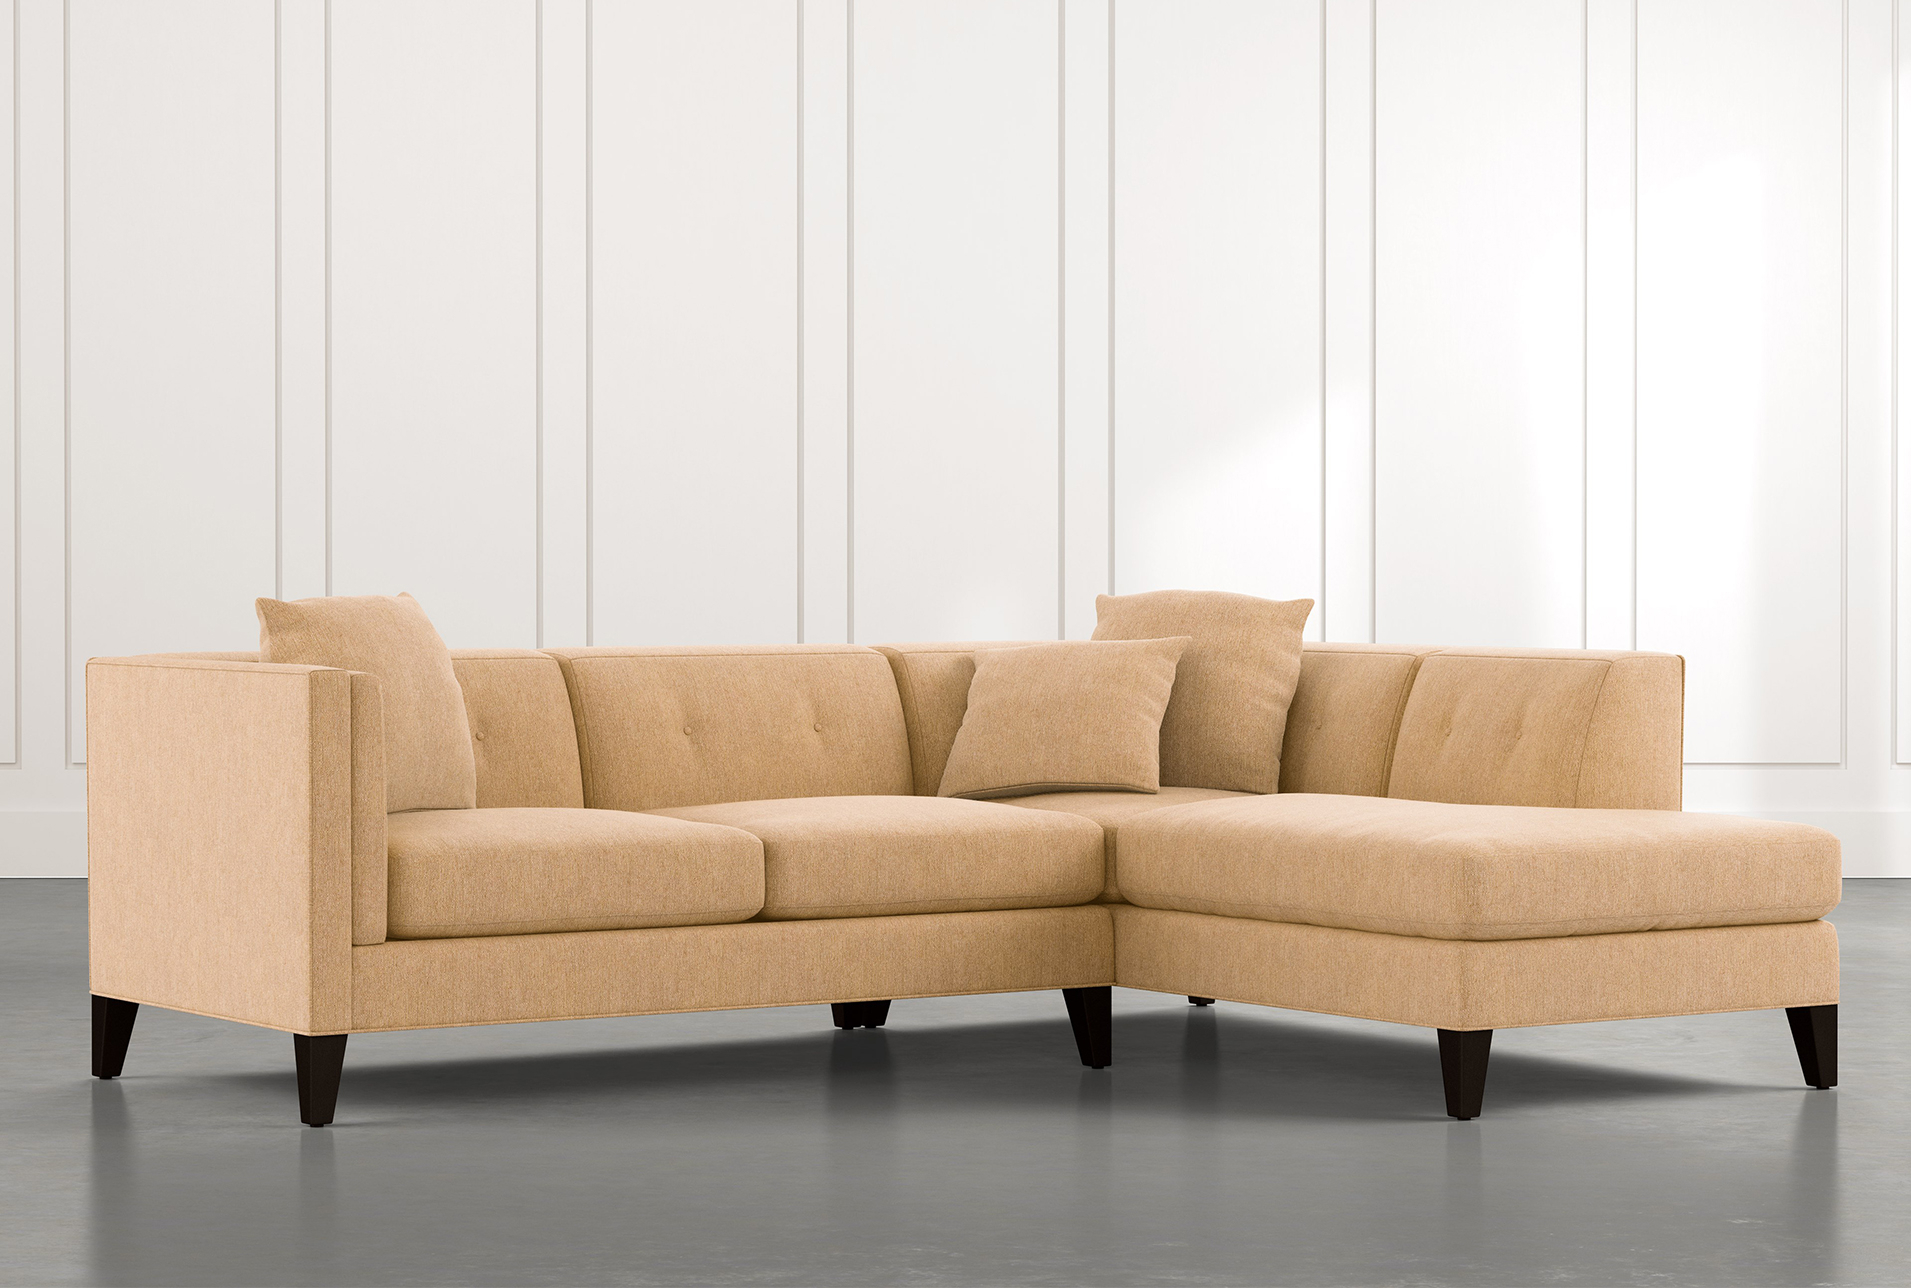 Avery Ii Yellow 2 Piece Sectional Sofa With Right Arm With 2Pc Connel Modern Chaise Sectional Sofas Black (View 12 of 15)